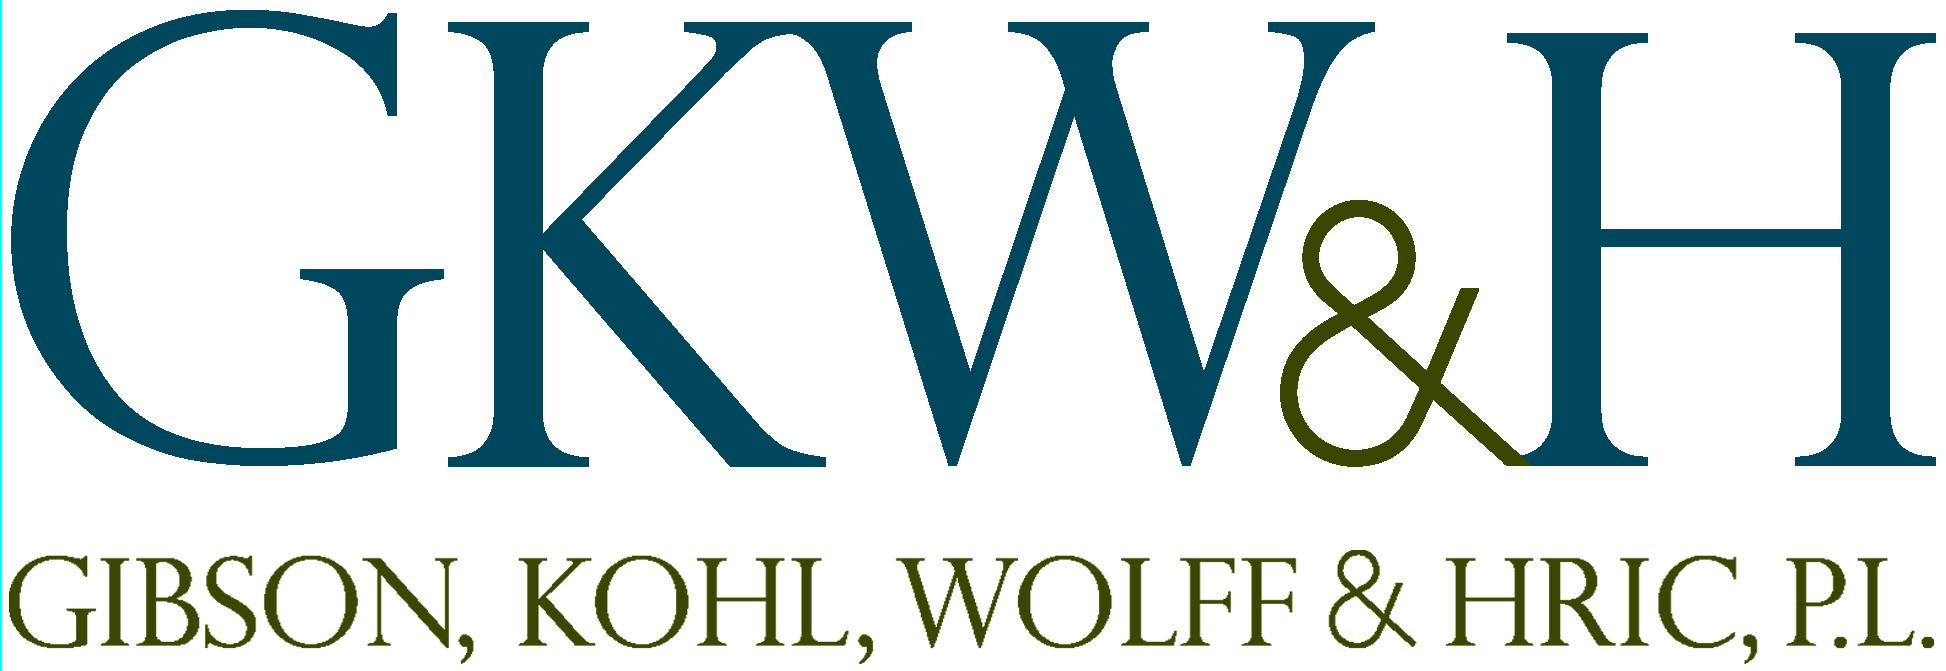 Logo for Gibson, Kohl, Wolff and Hric, P.L.